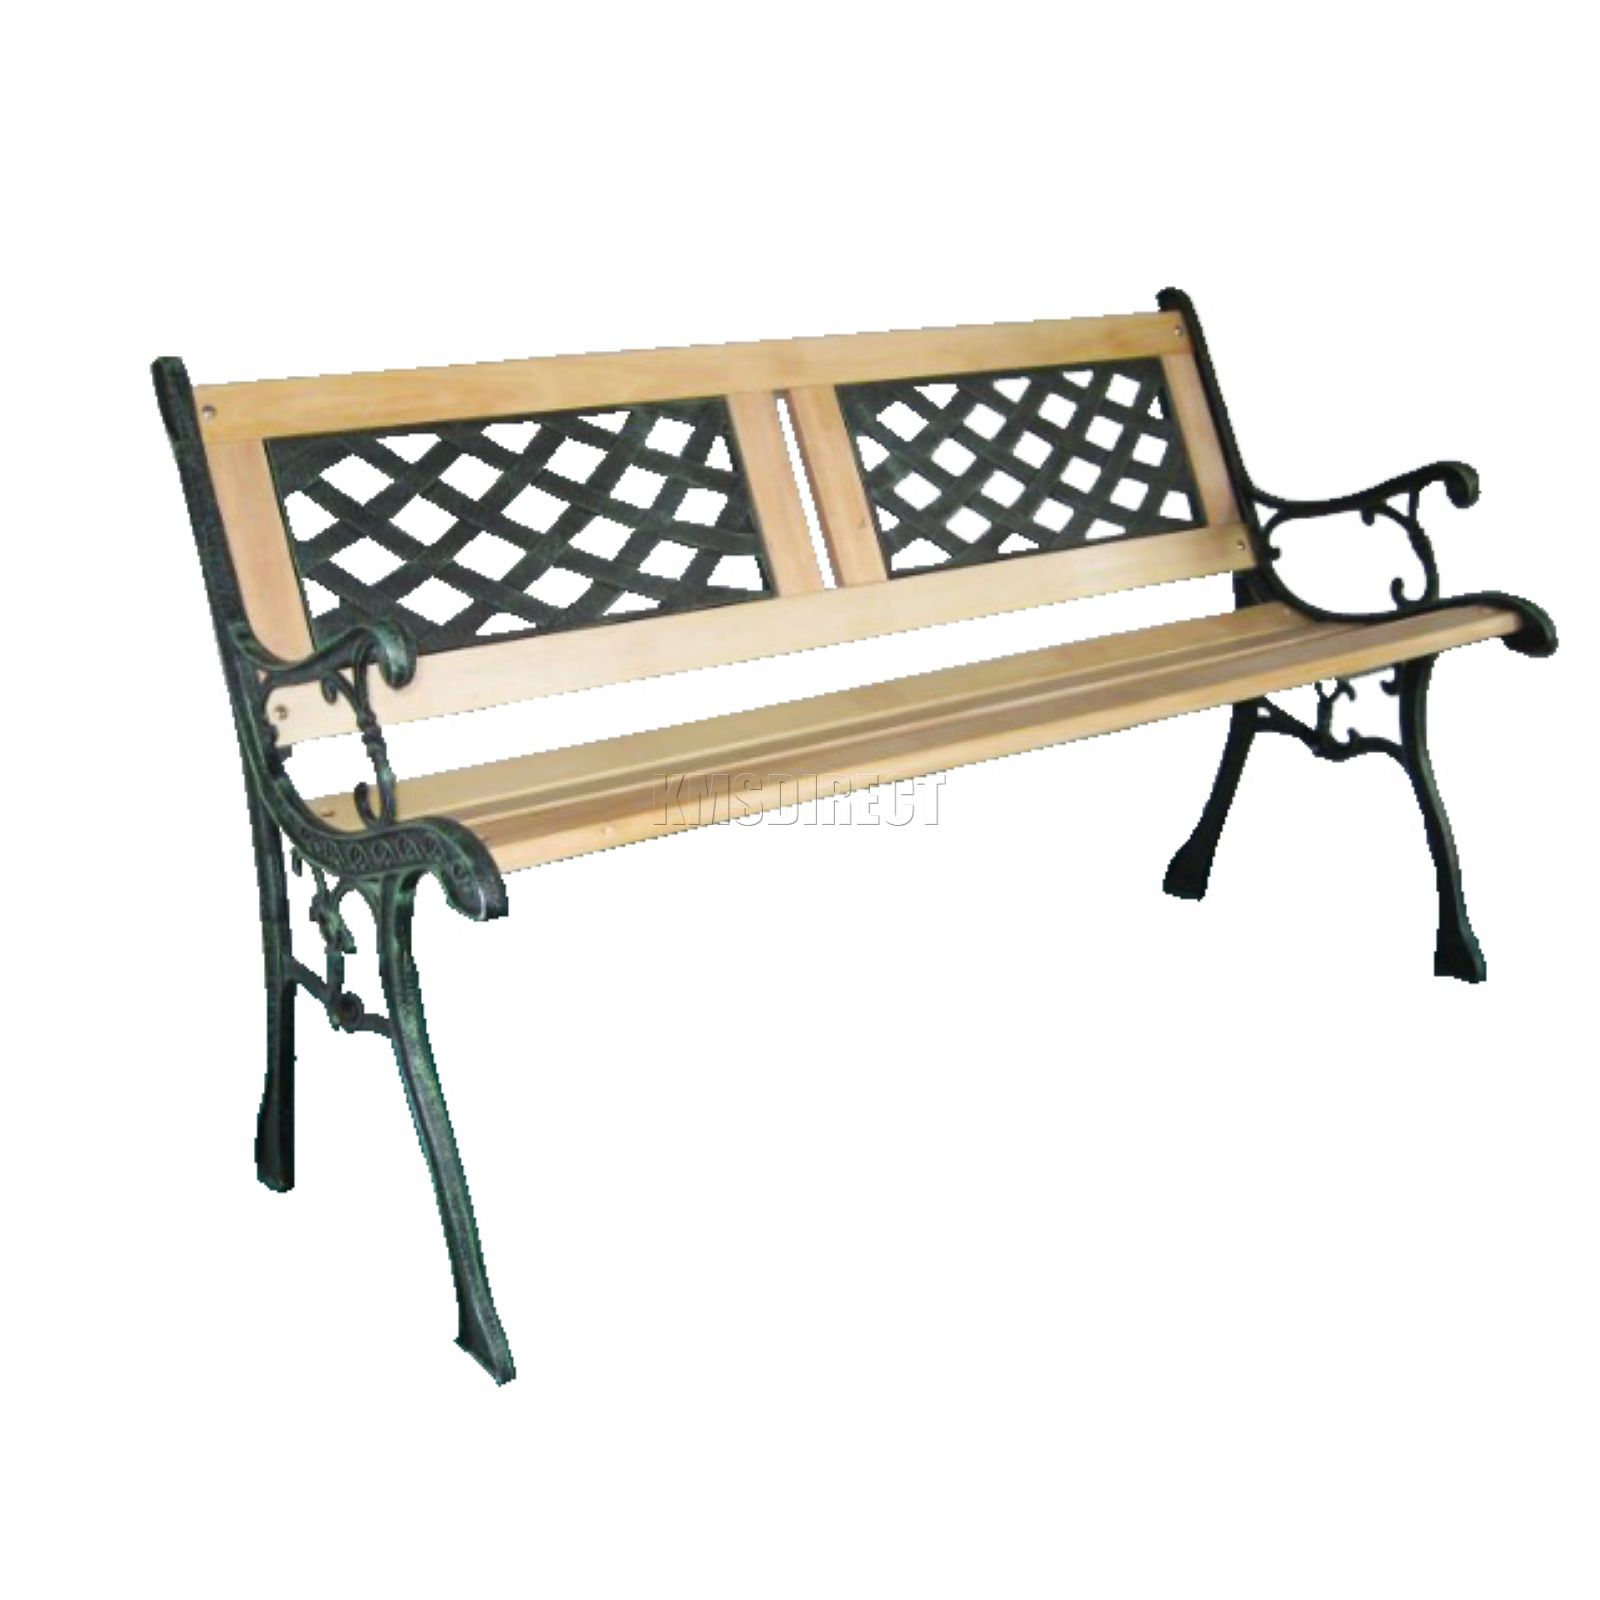 Outdoor Wooden Garden Bench 3 Seat Lattice Slat Style With Cast Iron Legs Park Ebay